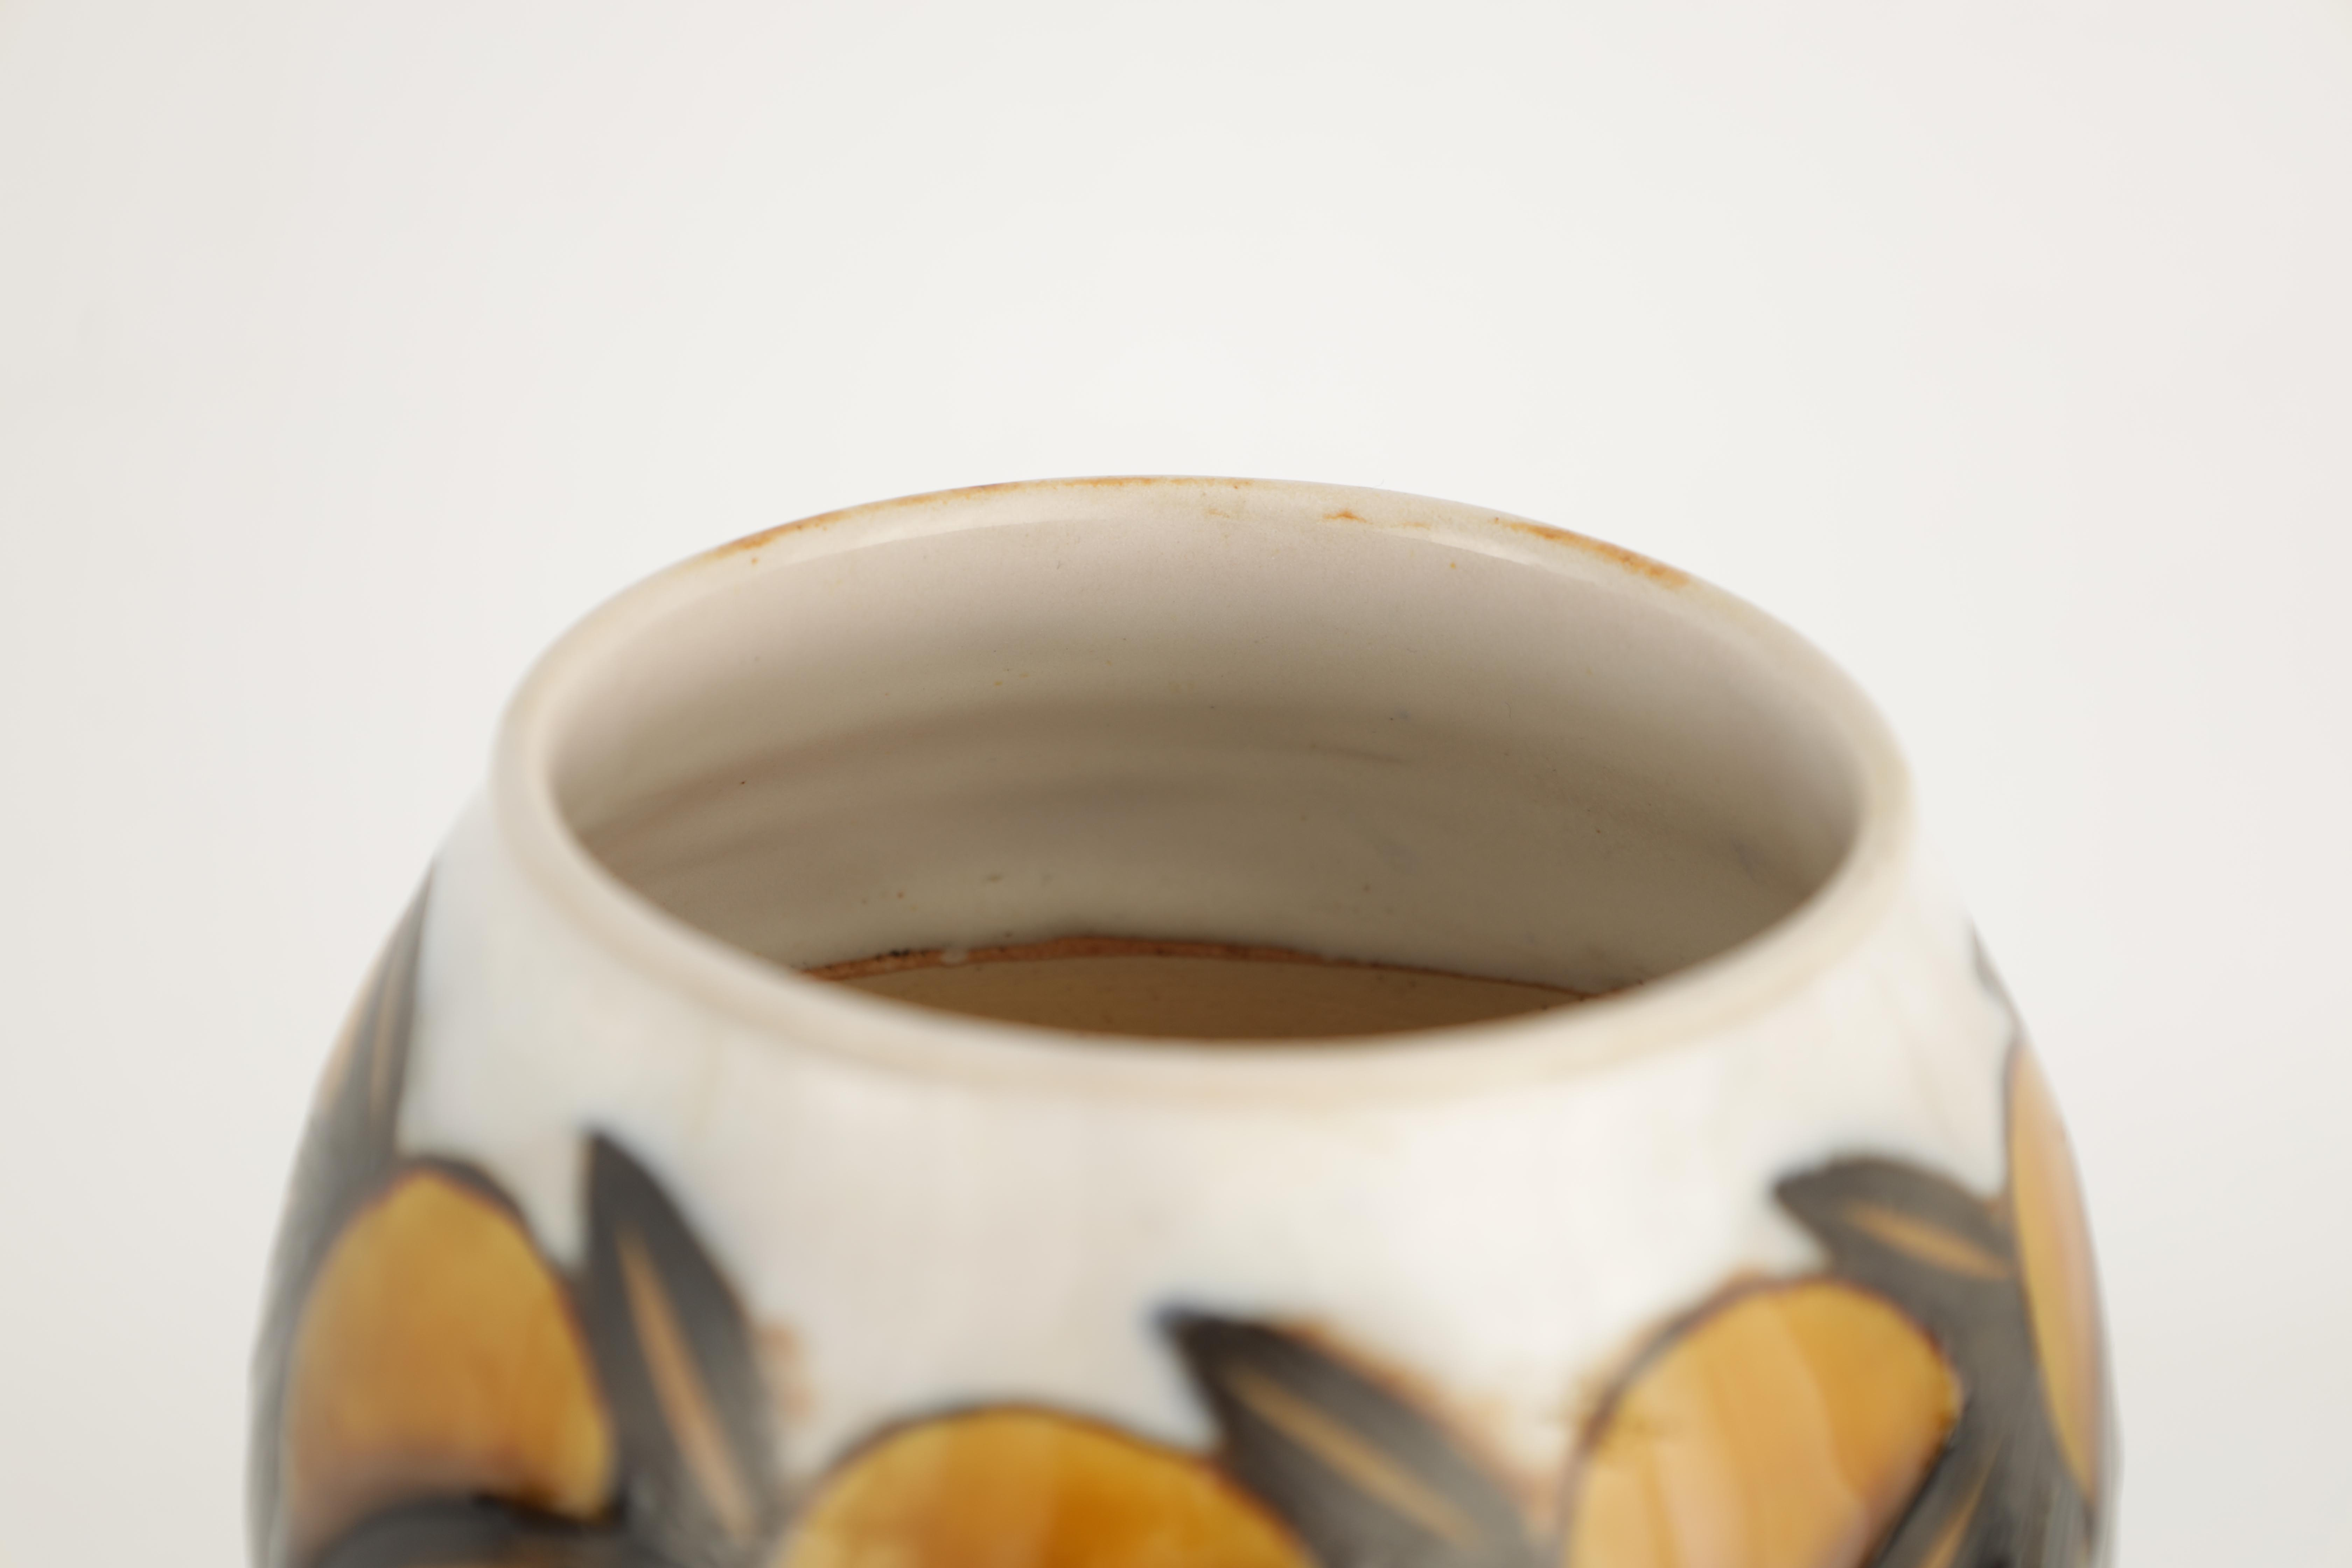 AN UNUSUAL ROYAL DOULTON TAPERED VASE WITH ROUNDED UPPER BODY decorated with designs of fruit and - Image 4 of 7